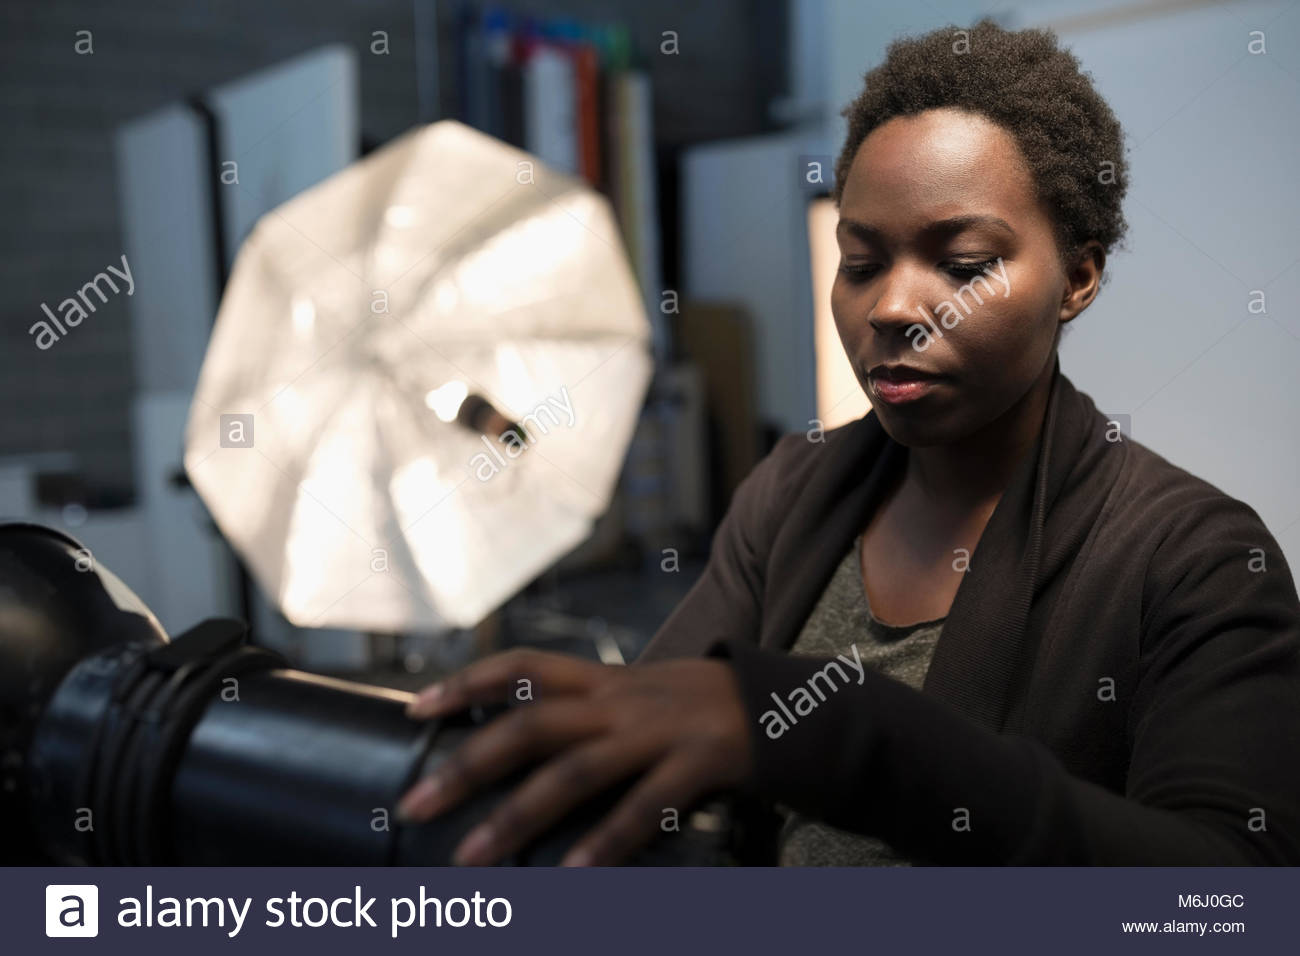 Focused female photographer preparing lighting equipment for photo shoot in studio - Stock Image